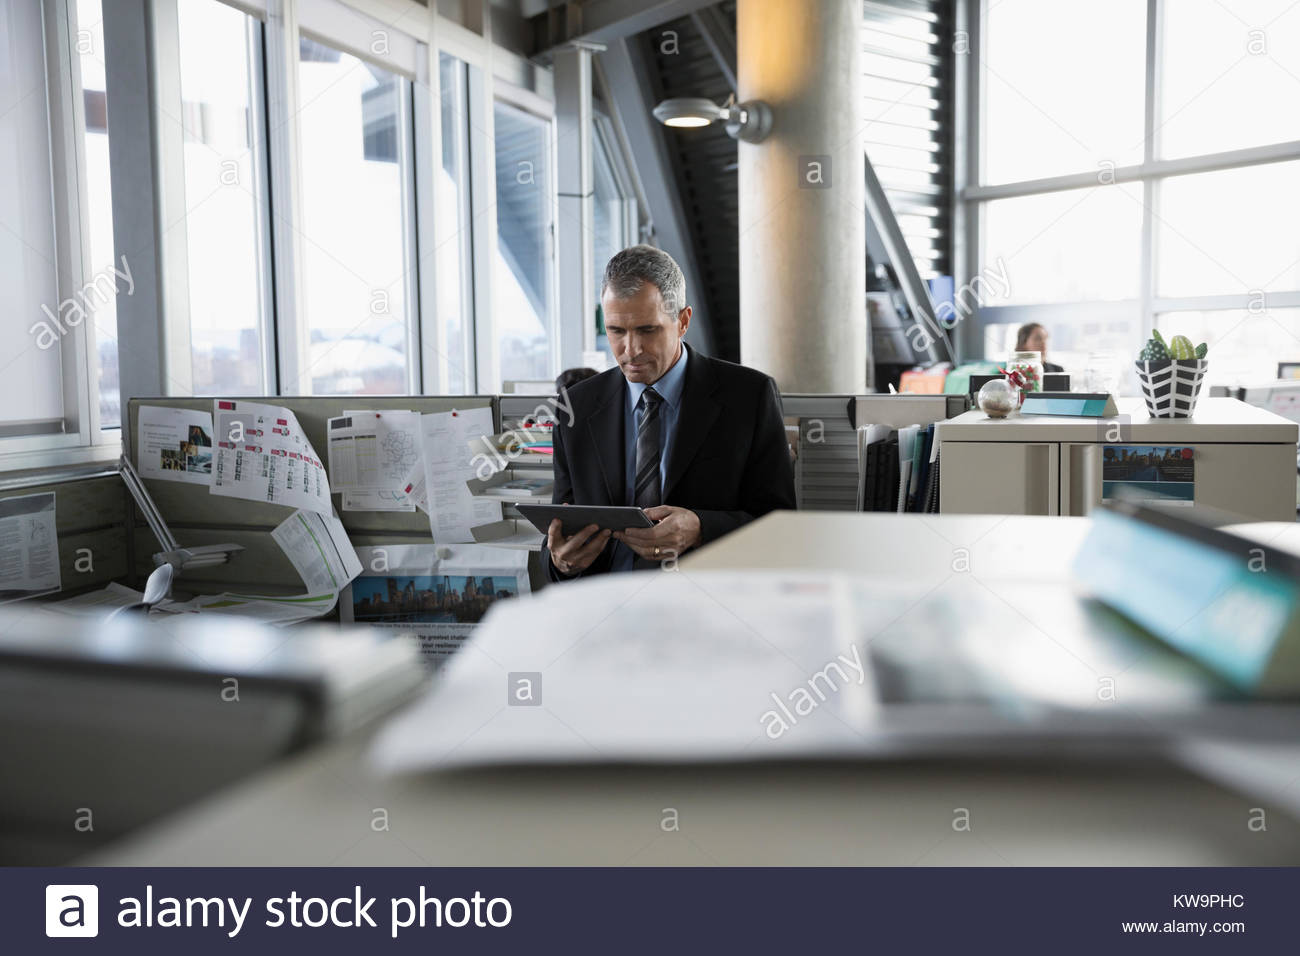 Focused businessman using digital tablet in office cubicle - Stock Image